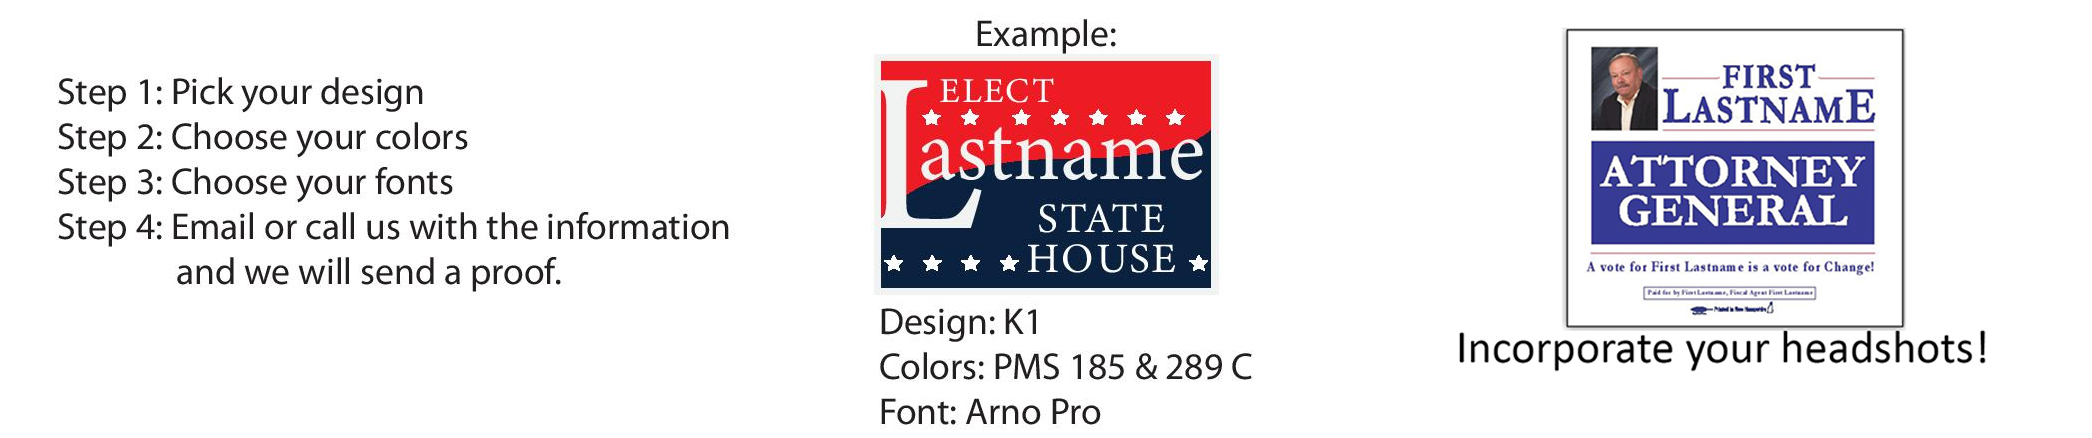 Union political printing, palm cards, coroplast signs, polybags, door hangers, post cards.